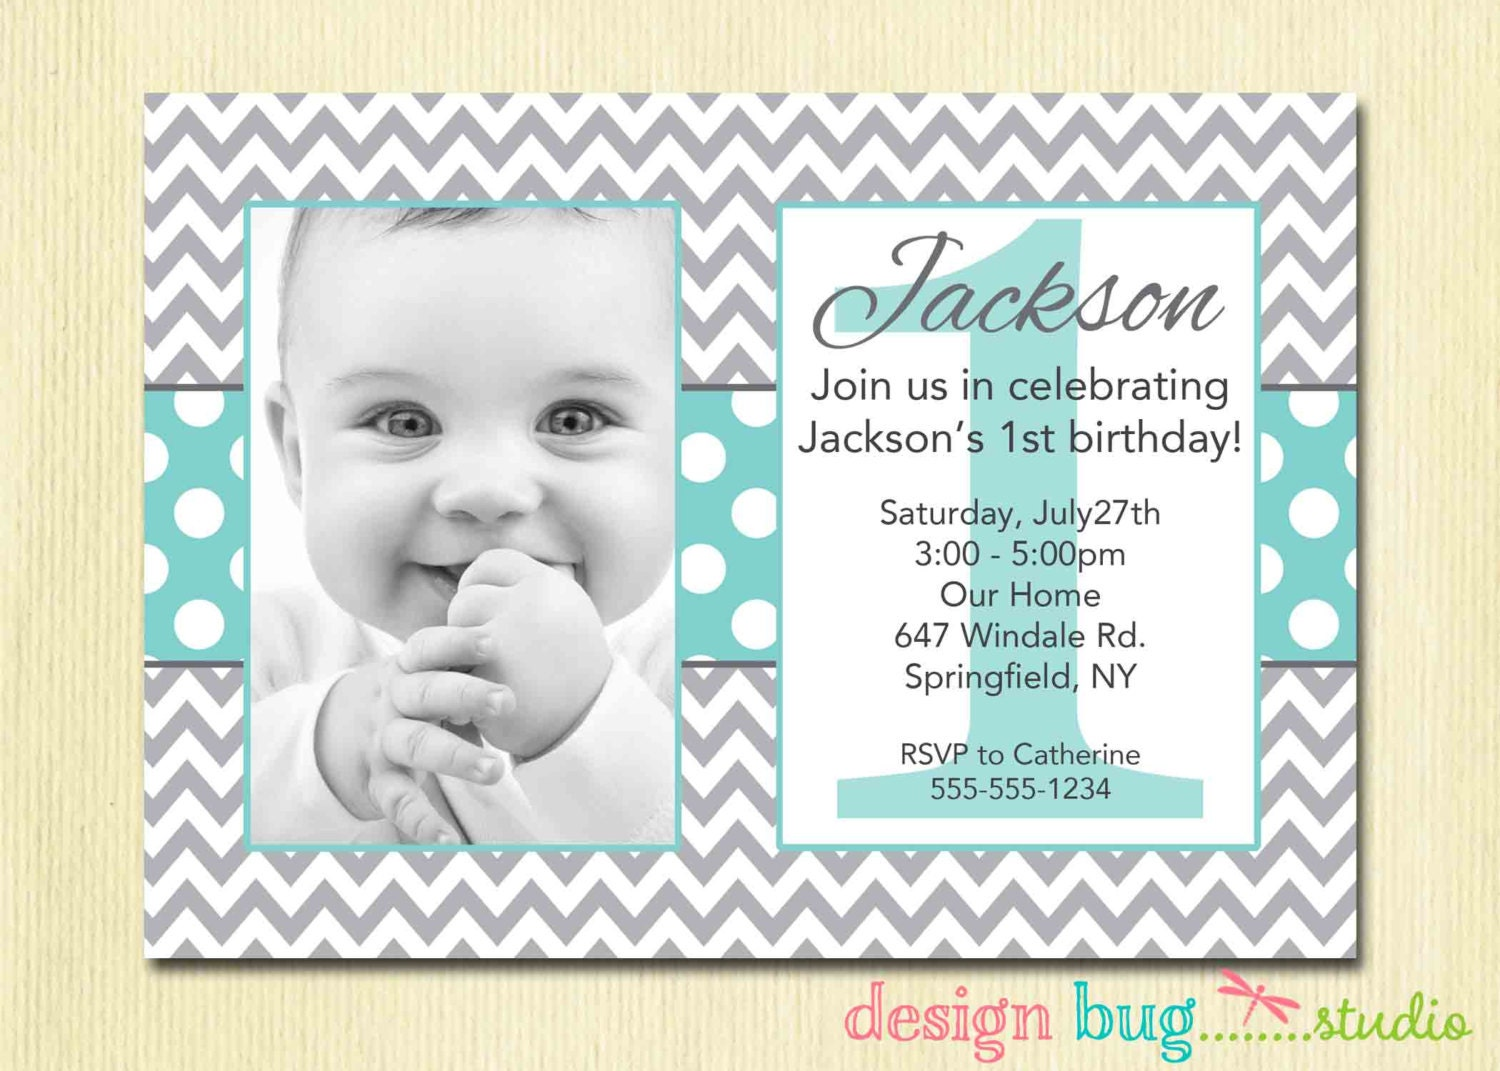 Boys Chevrons And Polka Dots Birthday Invitation Gray - Birthday invitation messages for 5 year old boy